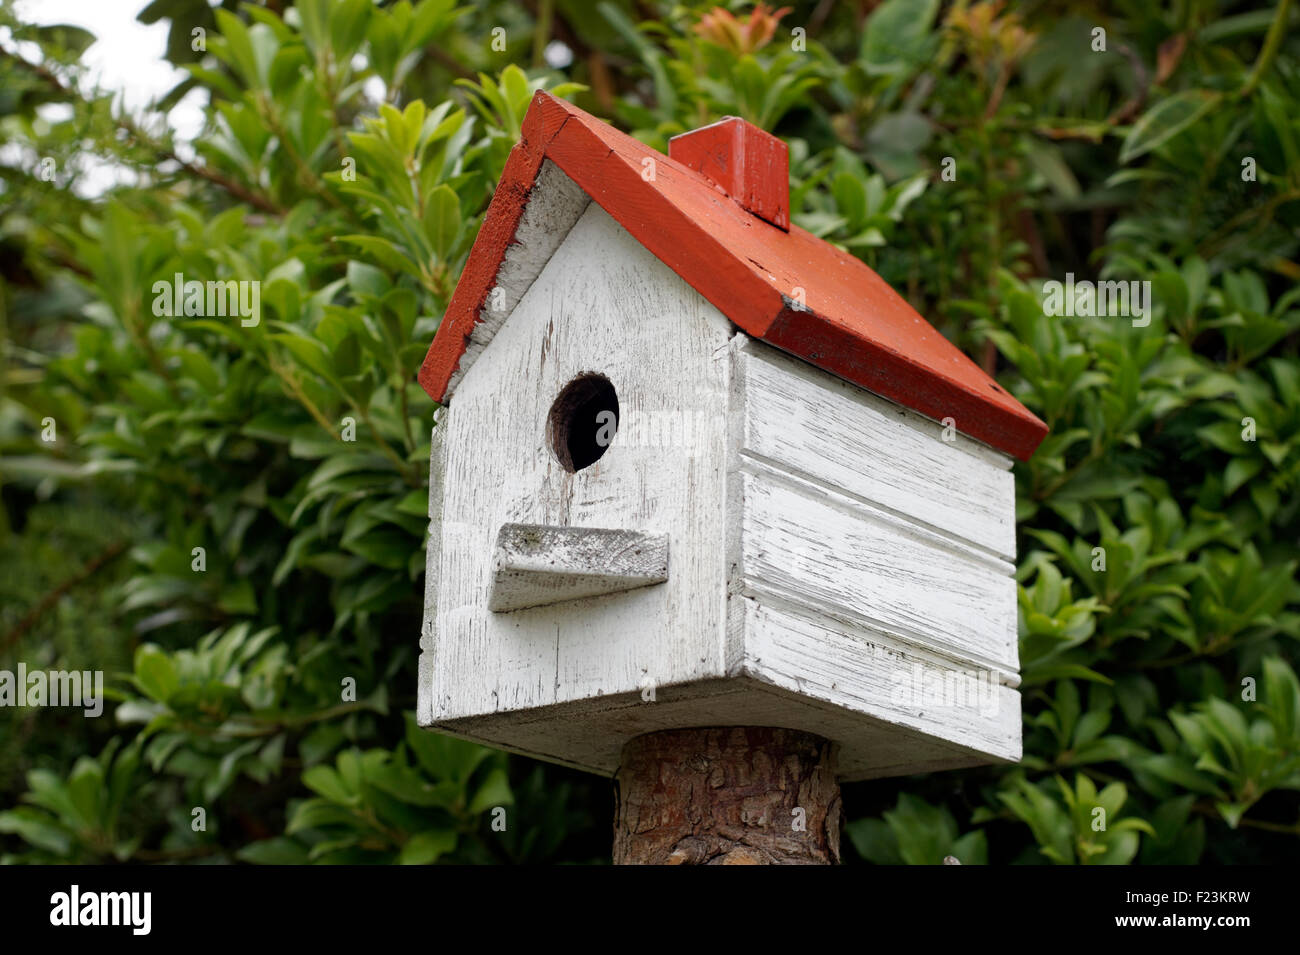 Close Up Of A Homemade Red And White Painted Wooden Birdhouse Stock